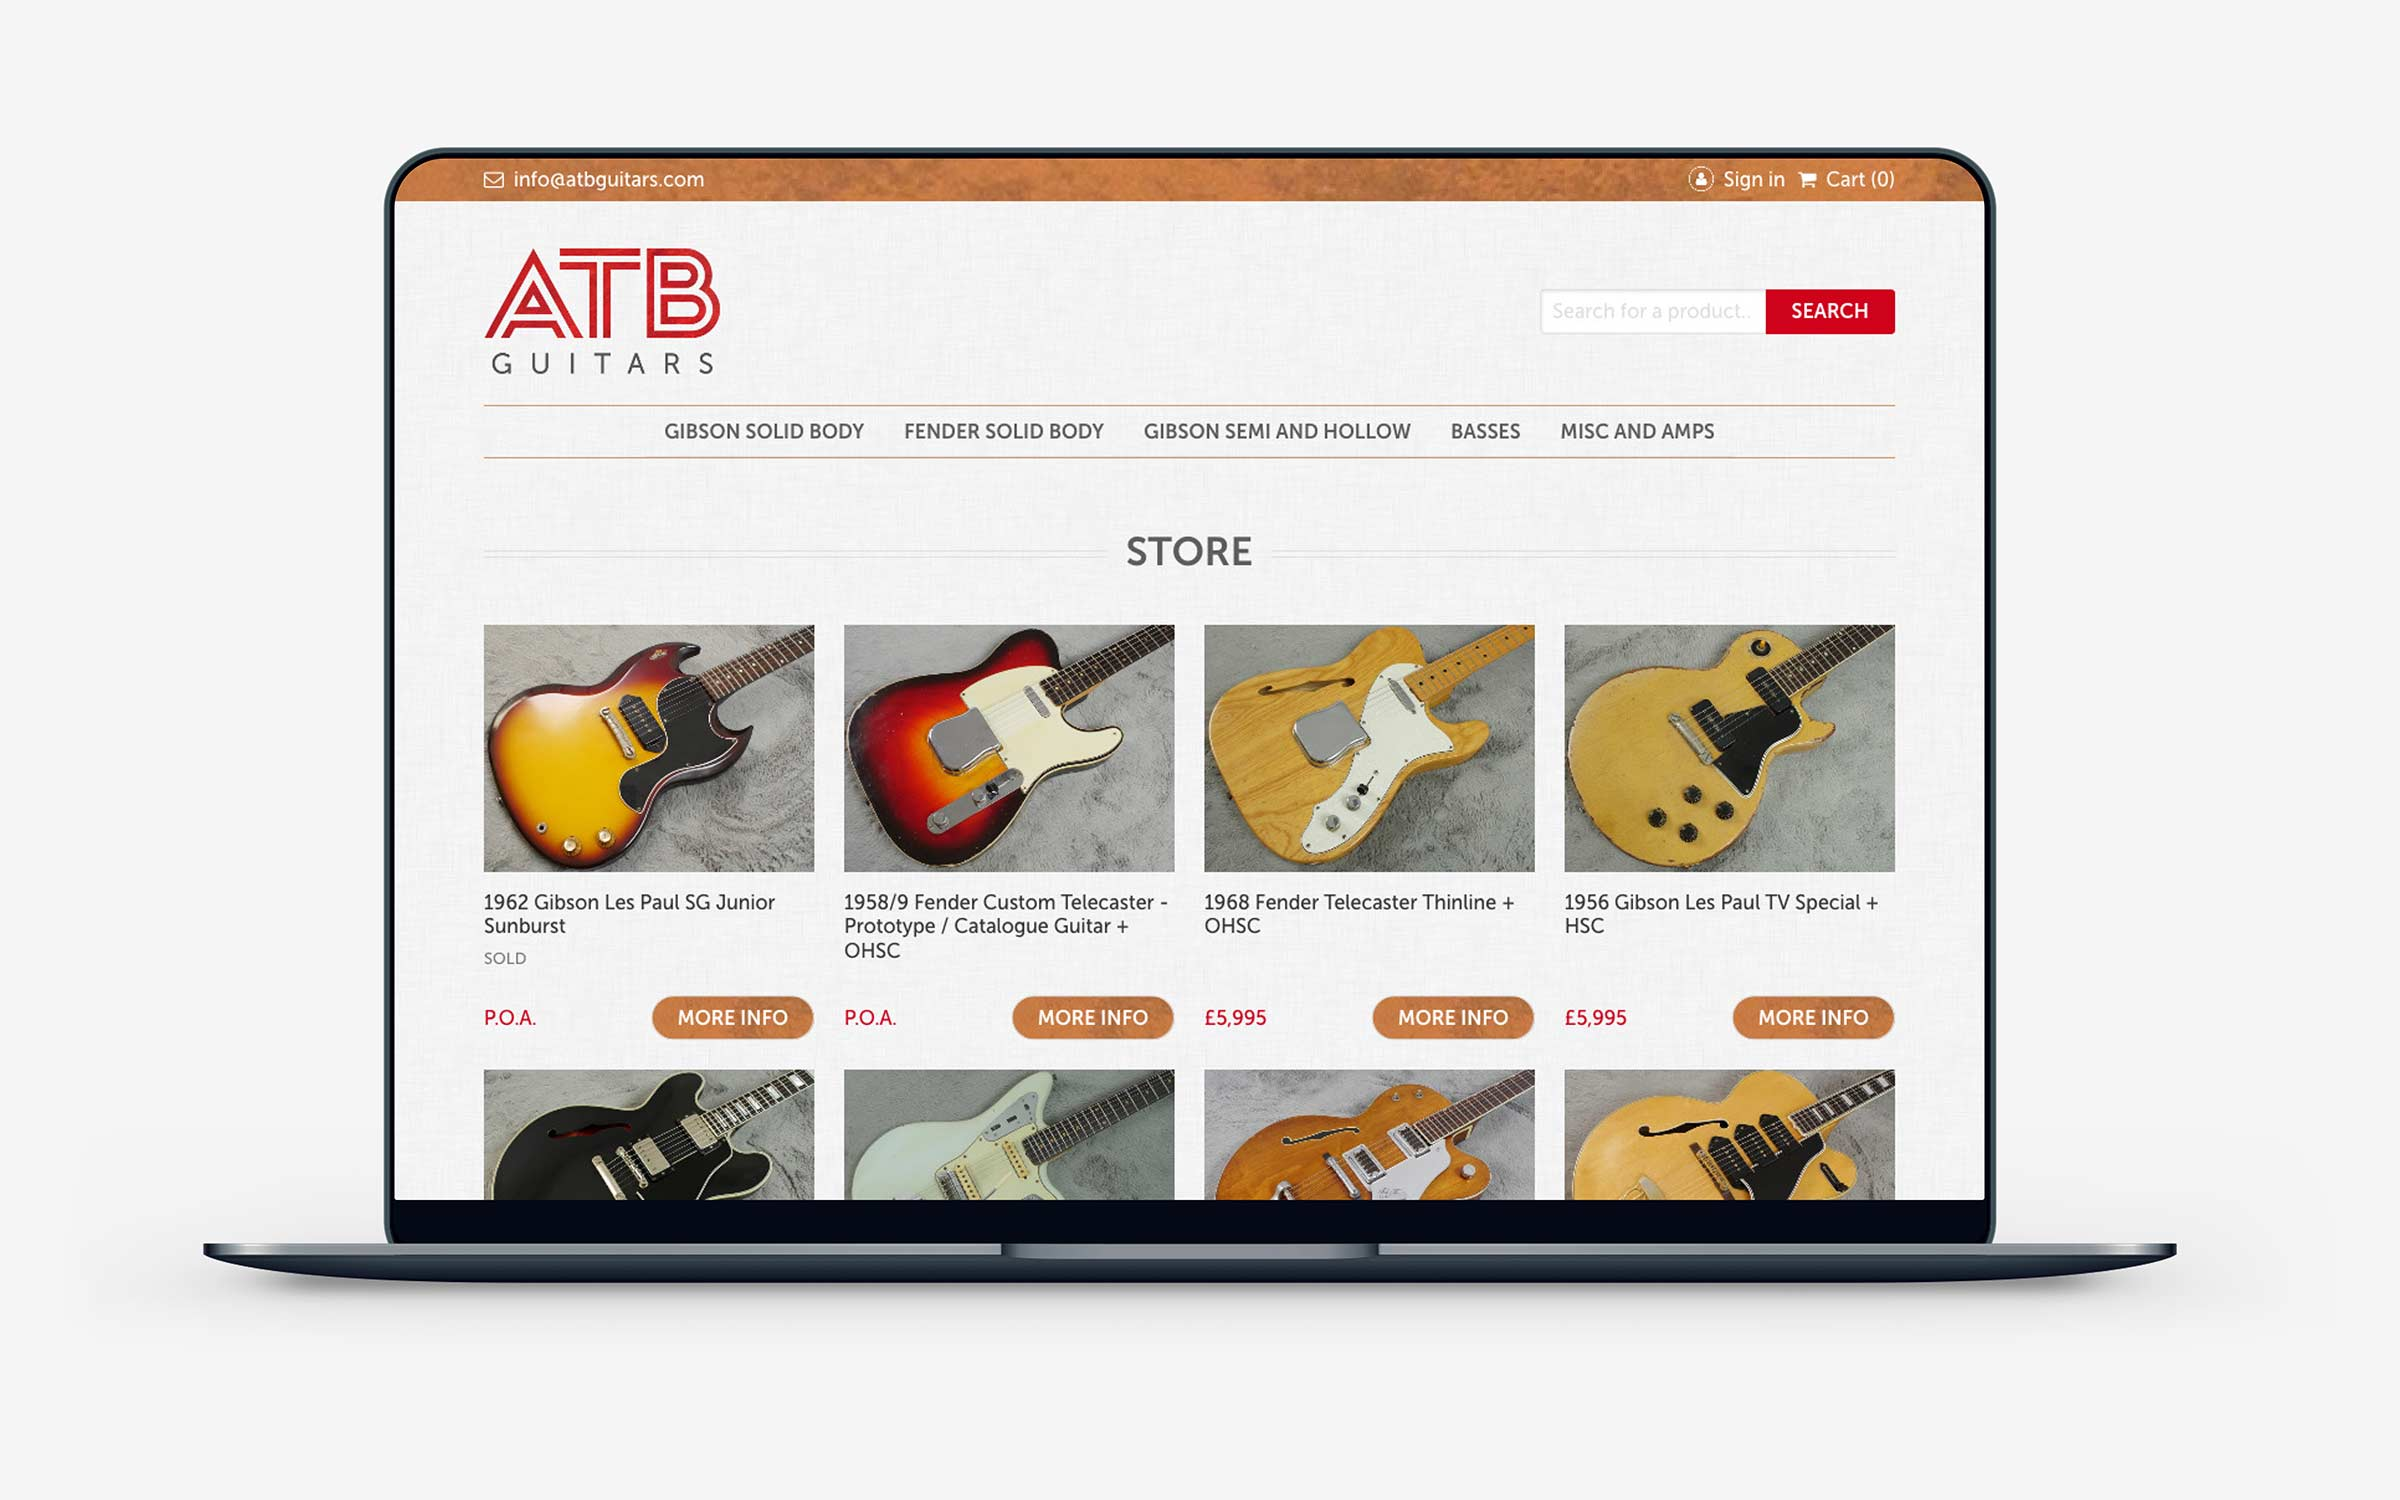 ATB website in desktop view